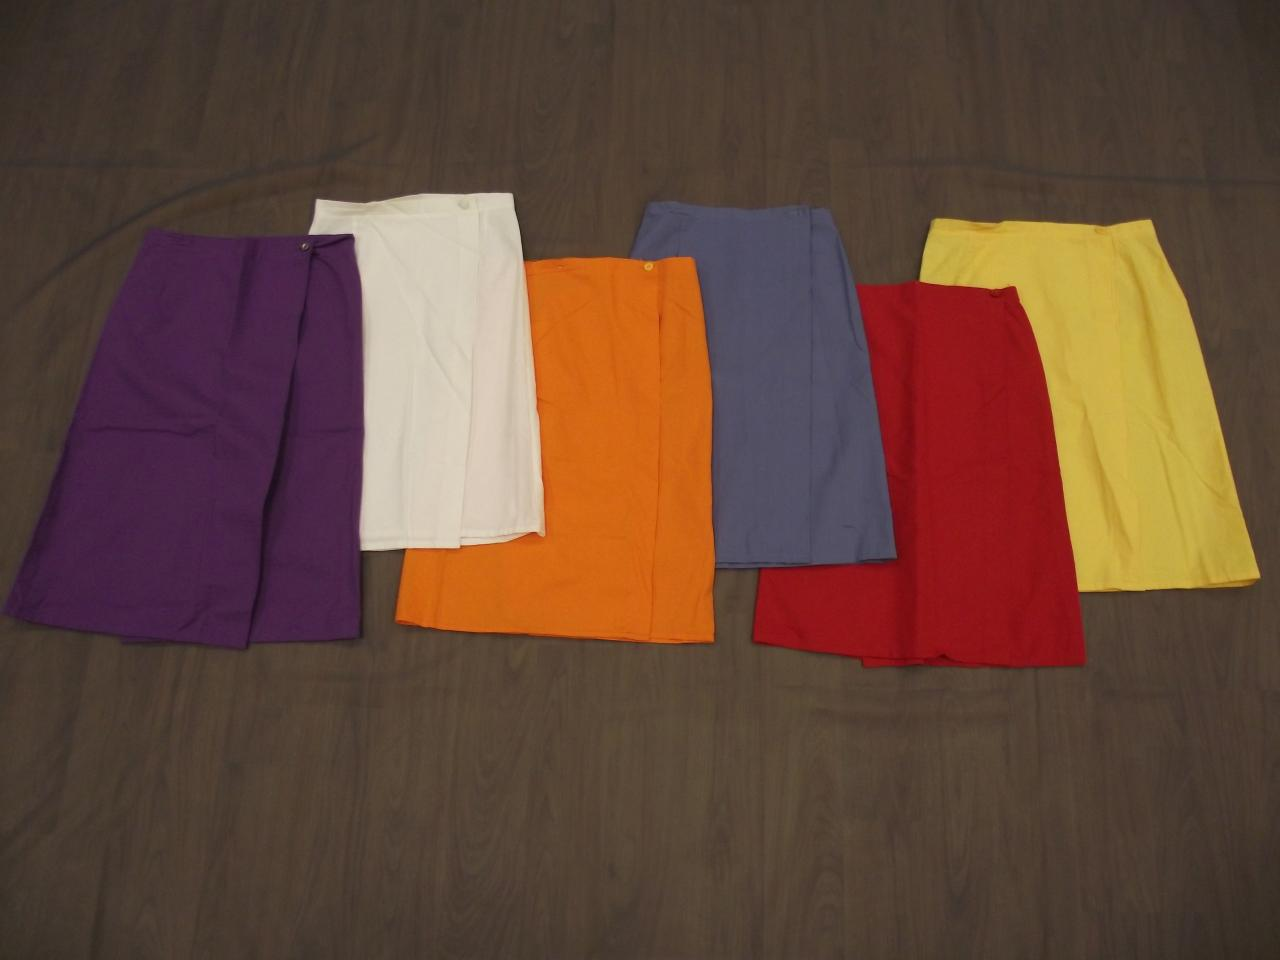 Jupes violette, blanche, orange, rouge, jaune (x7) - 10/12 ans